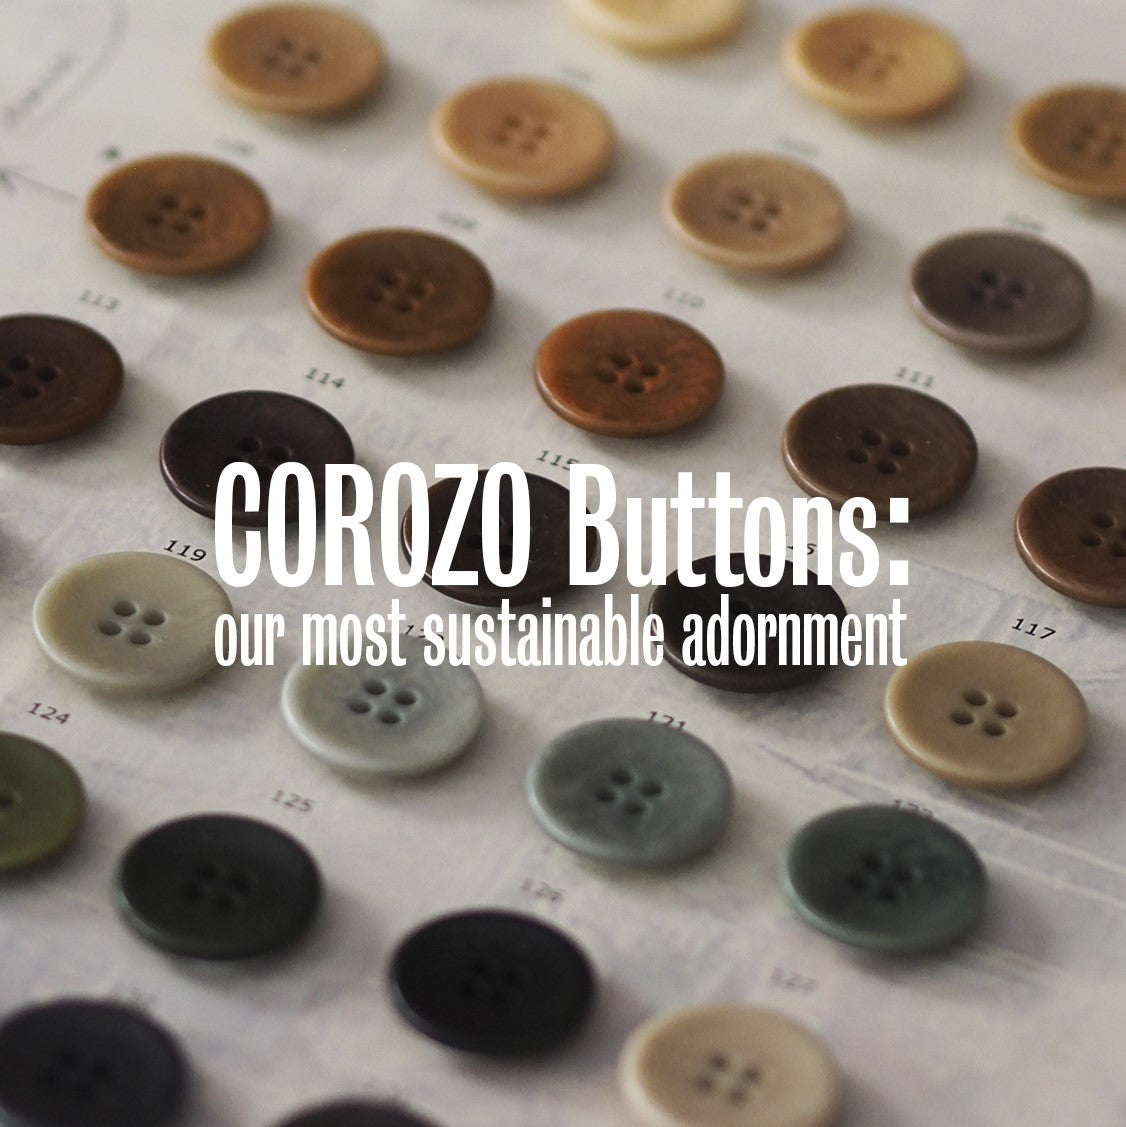 Corozo buttons: our most sustainable adornment